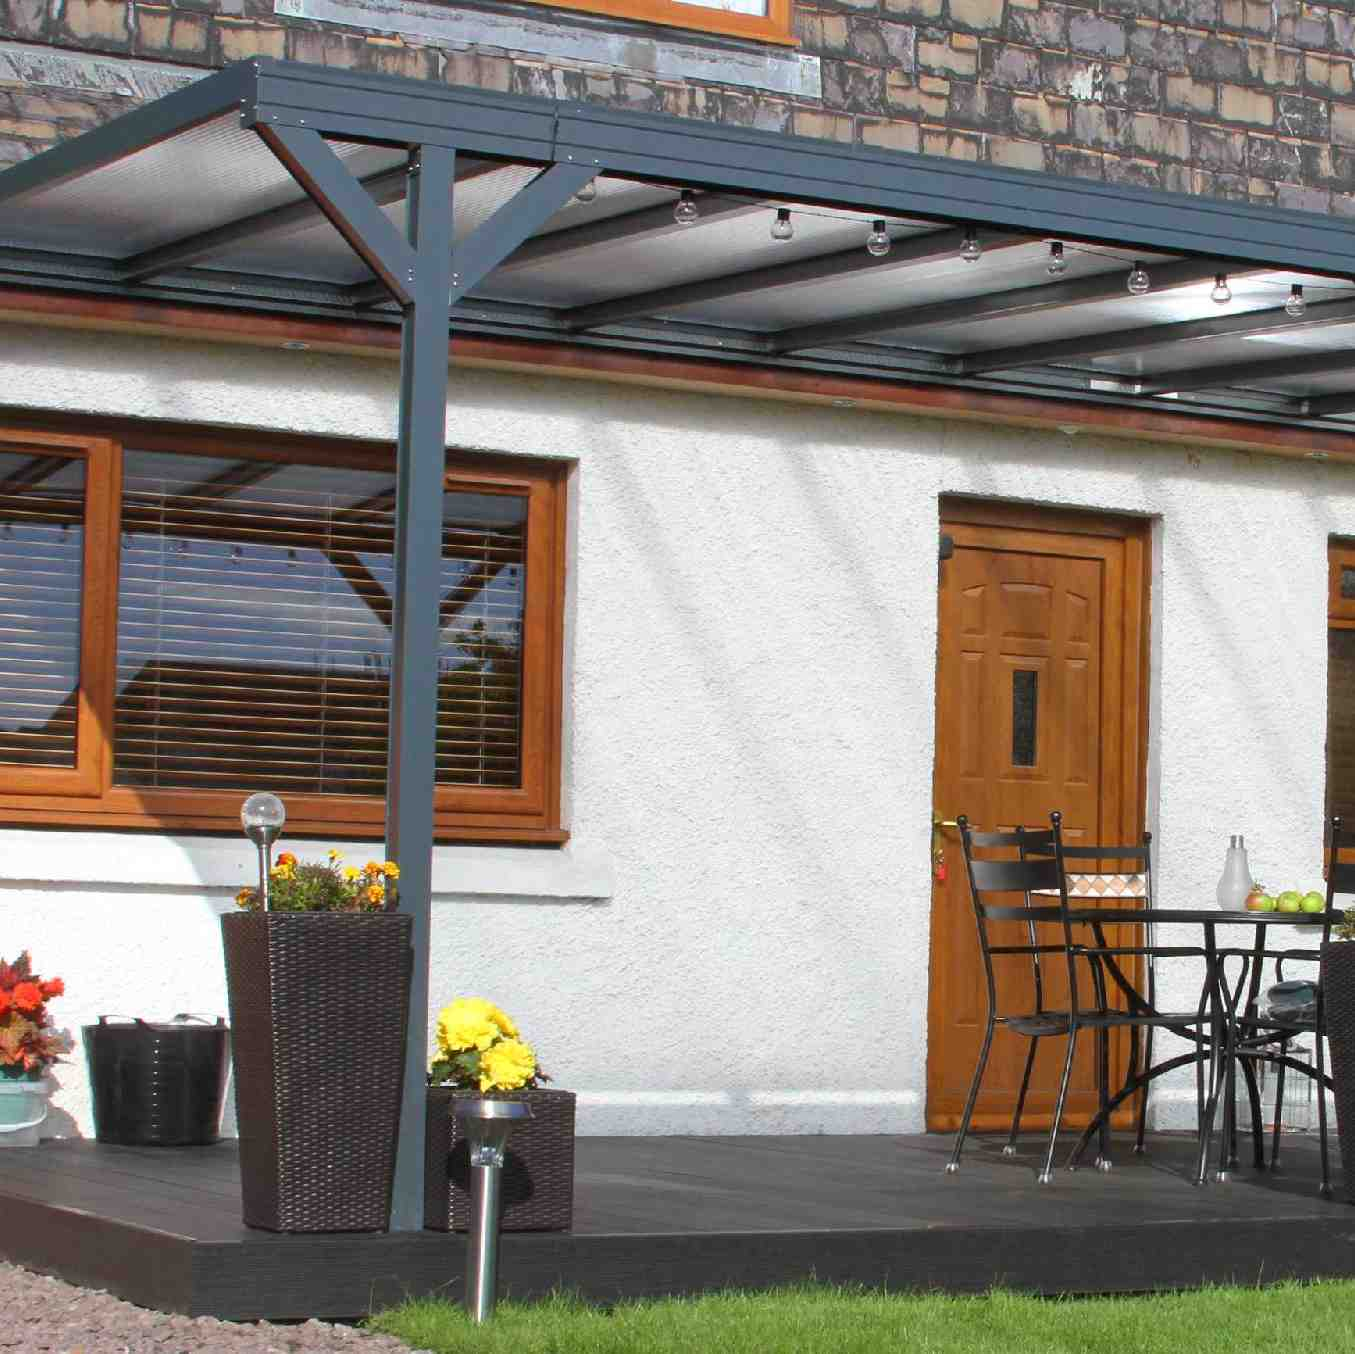 Omega Verandah, Anthracite Grey, 16mm Polycarbonate Glazing - 2.1m (W) x 2.0m (P), (2) Supporting Posts